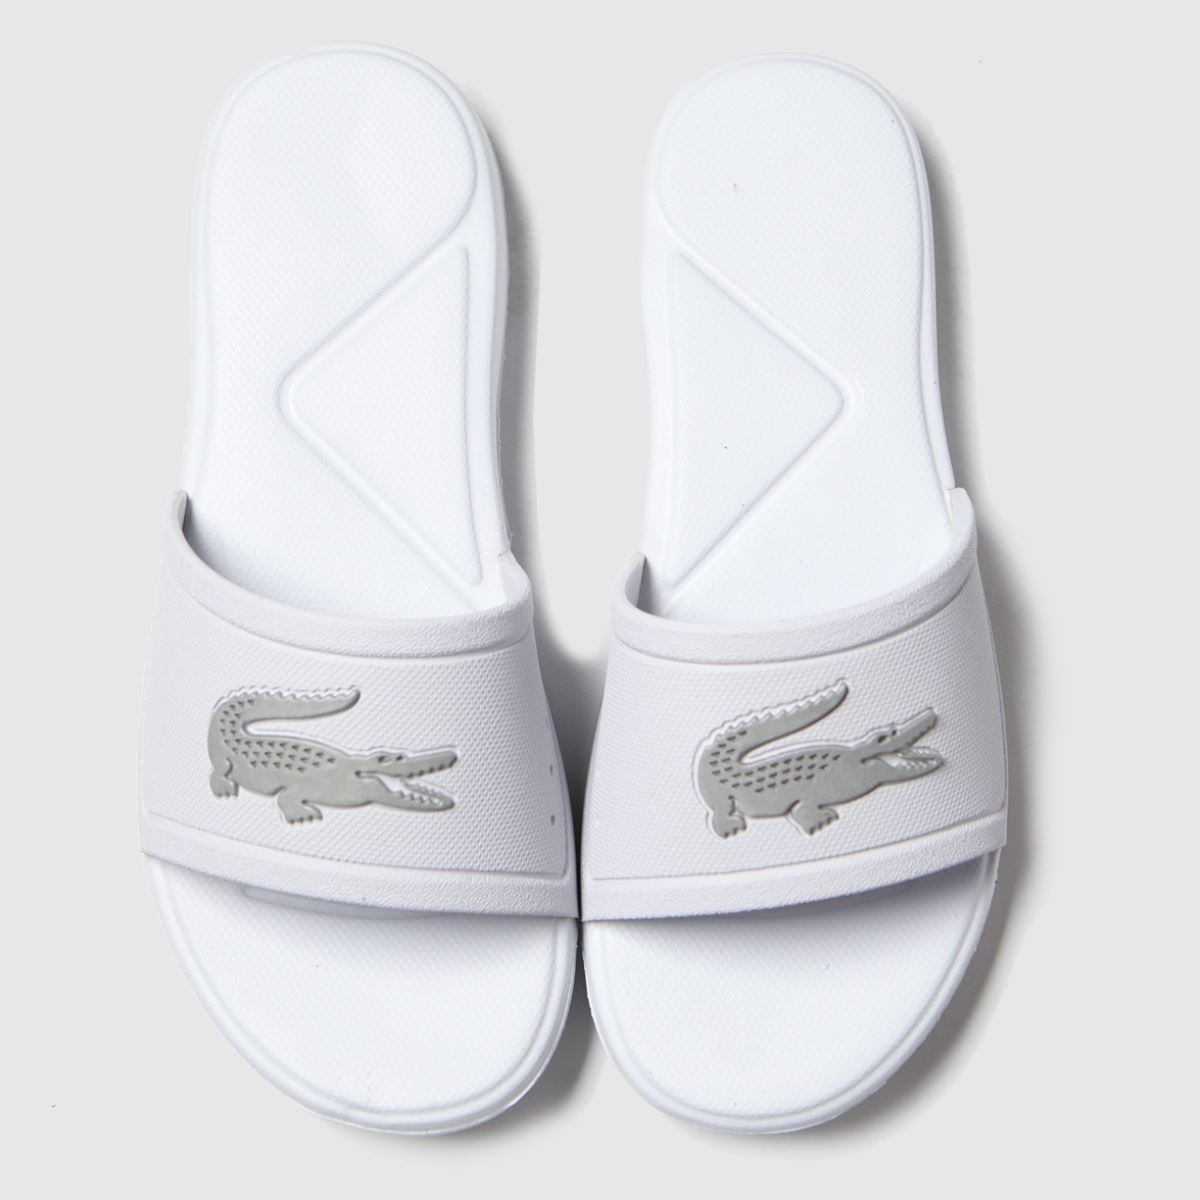 Lacoste White & Silver L.30 Slide Trainers Youth